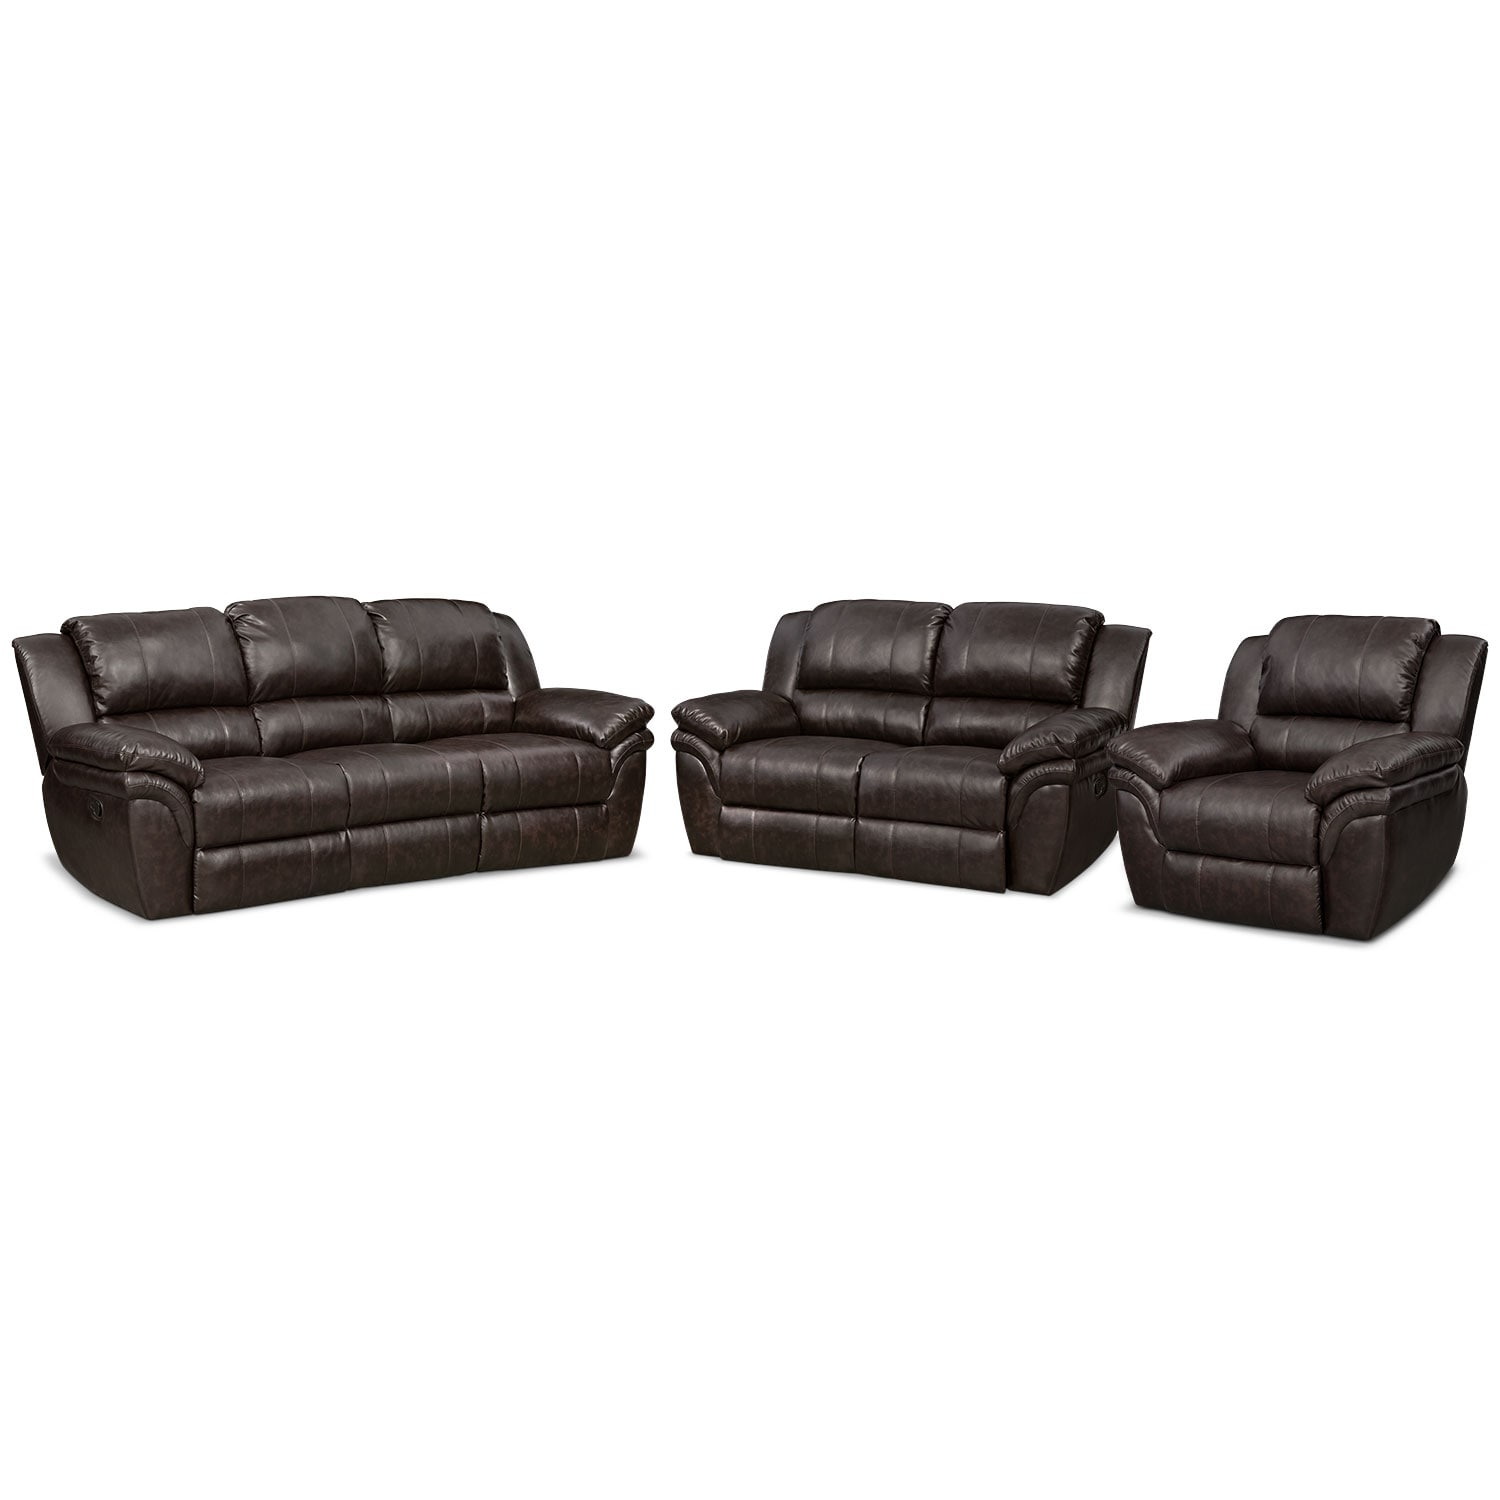 Living Room Furniture - Omni Dual Manual-Reclining Sofa, Dual Manual-Reclining Loveseat and Manual Recliner Set - Brown